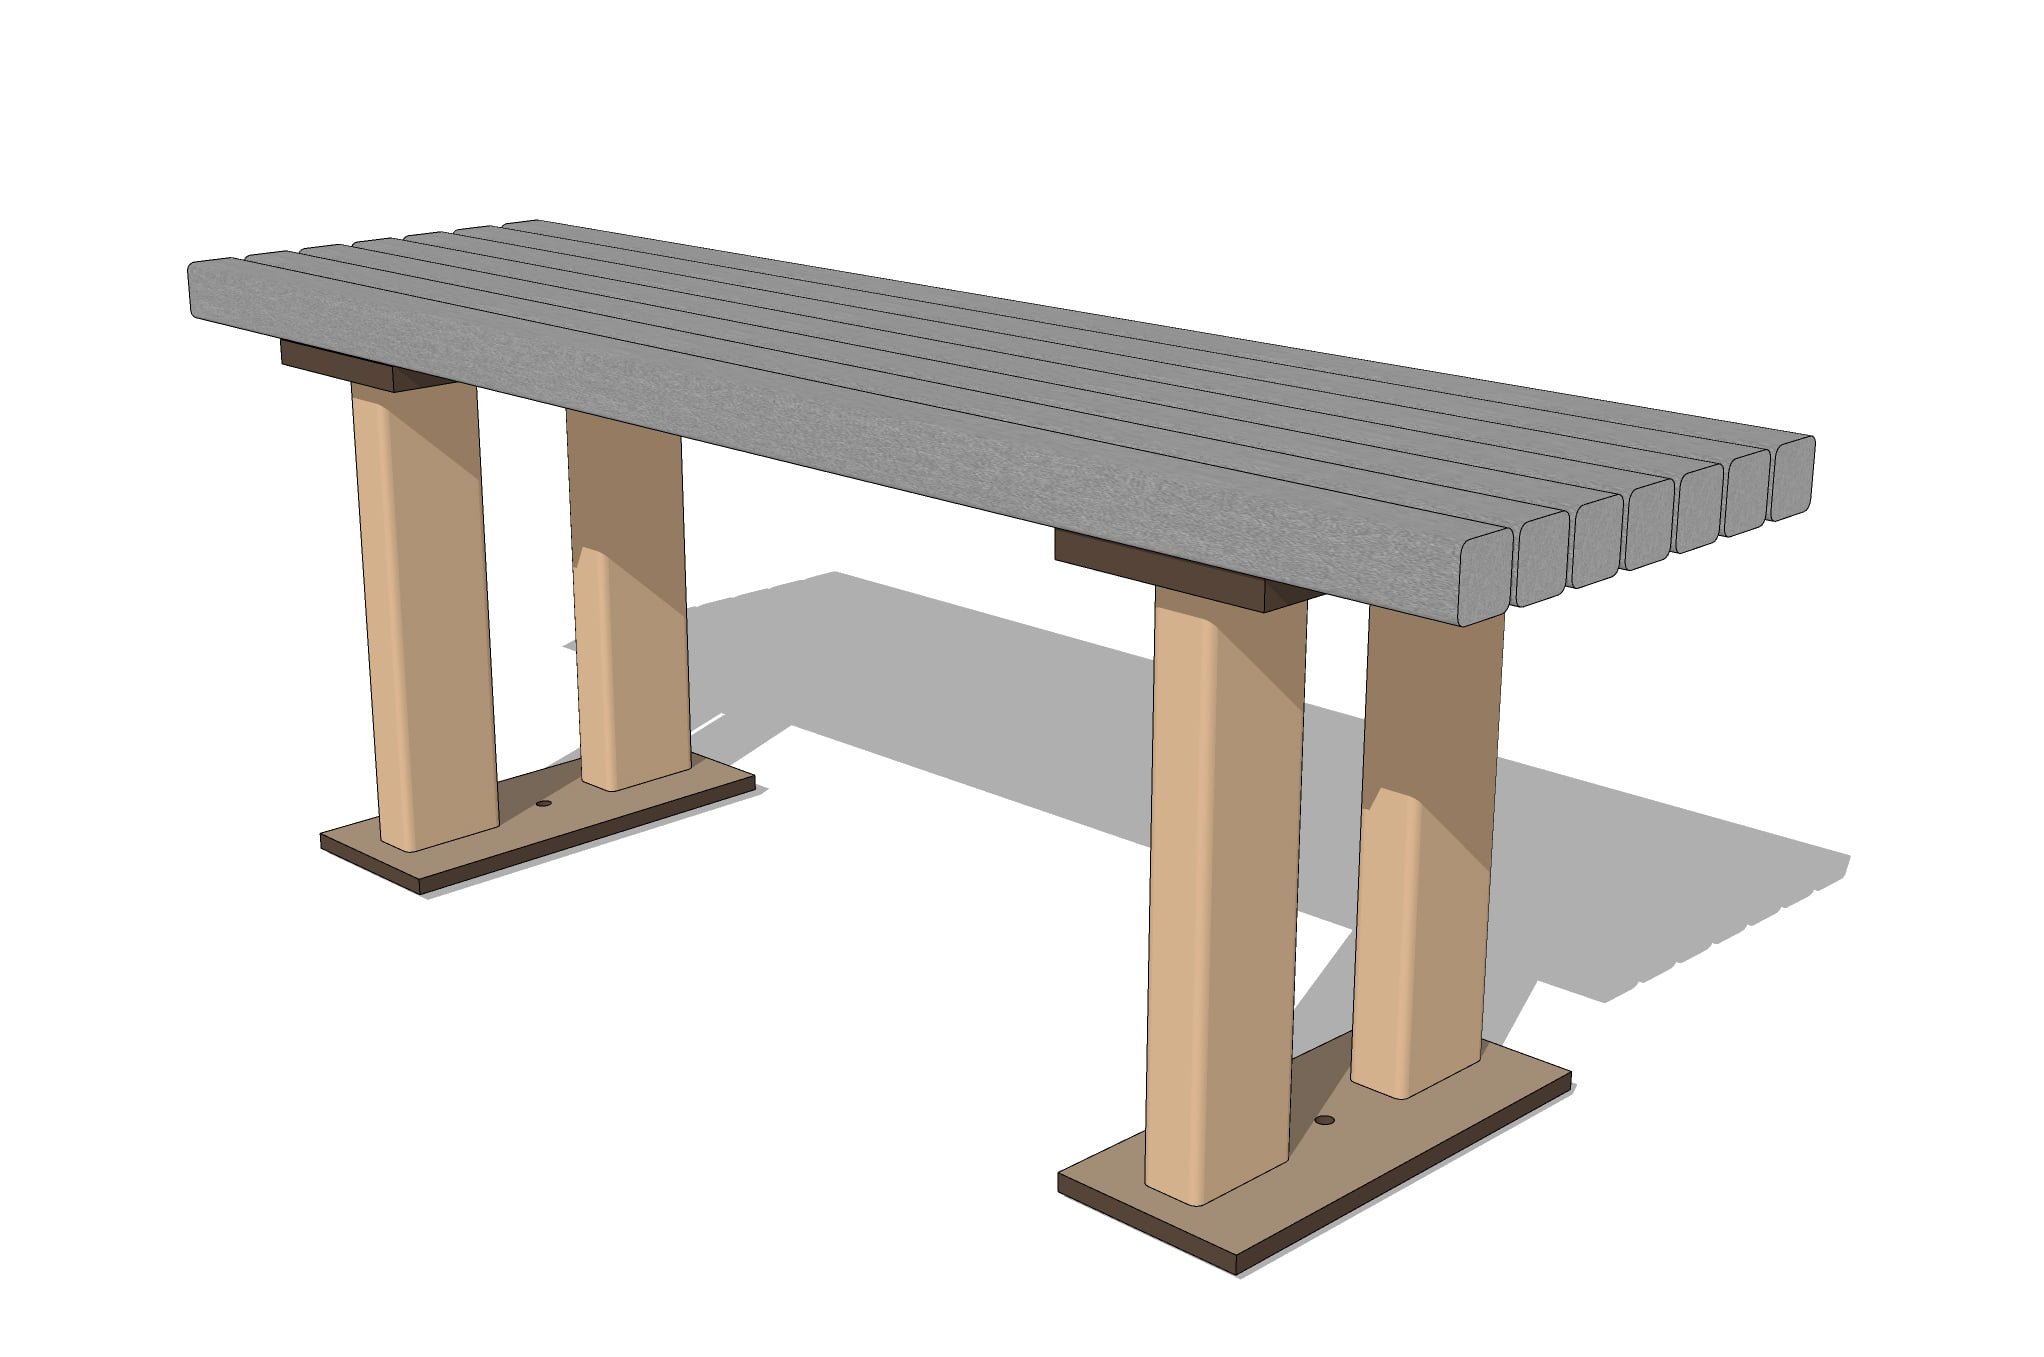 4 FT ADULT FLAT BENCH - 1